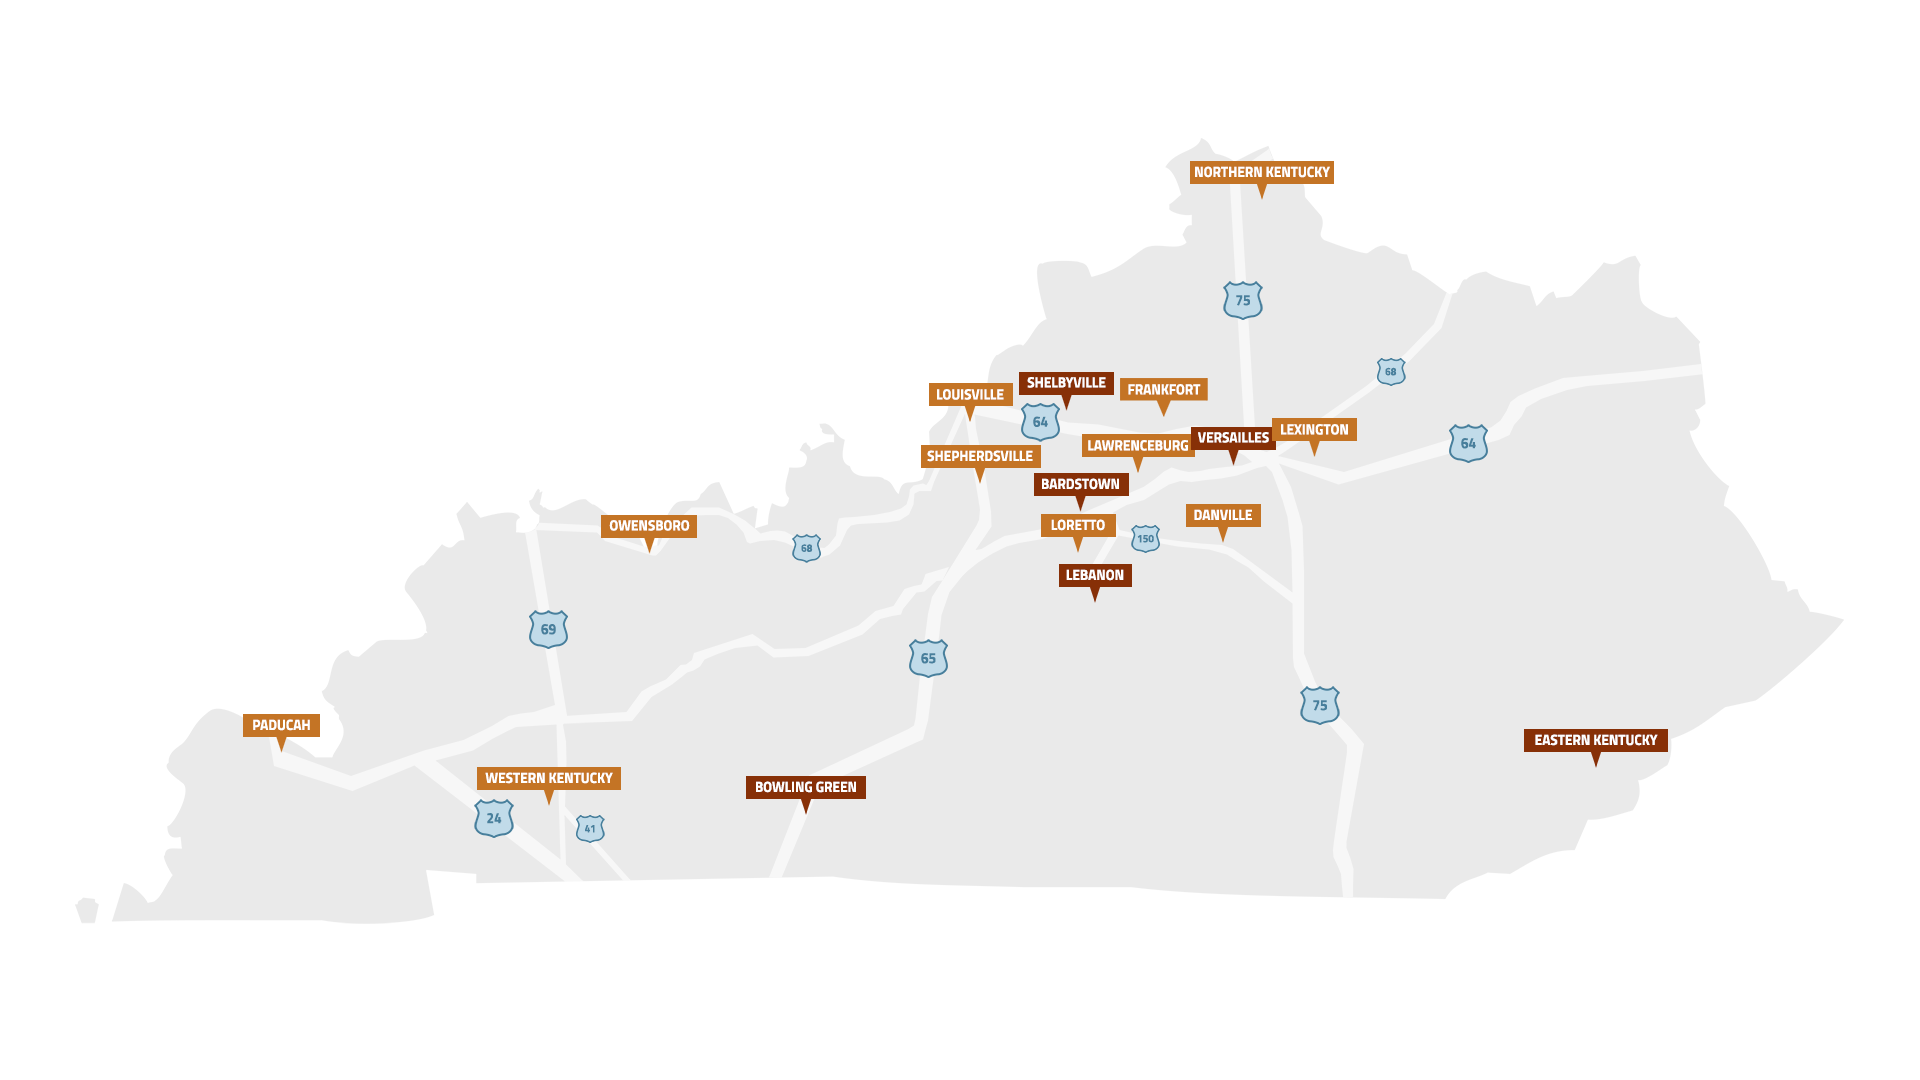 Bourbon Tours in Kentucky - See Famous Kentucky Bourbon Distillers on rand mcnally travel map, tennessee virginia and north carolina map, kentucky state regions map, kentucky map with counties, kentucky state resource map, funny united states map, state of kentucky rivers map, kentucky road map with cities, kentucky elk hunting zone map, kentucky on a map, kentucky state map of ky, kentucky state map coloring pages, kentucky climate map, kentucky state product map, kentucky state parks map, kentucky state campgrounds map, kentucky state and county road map,